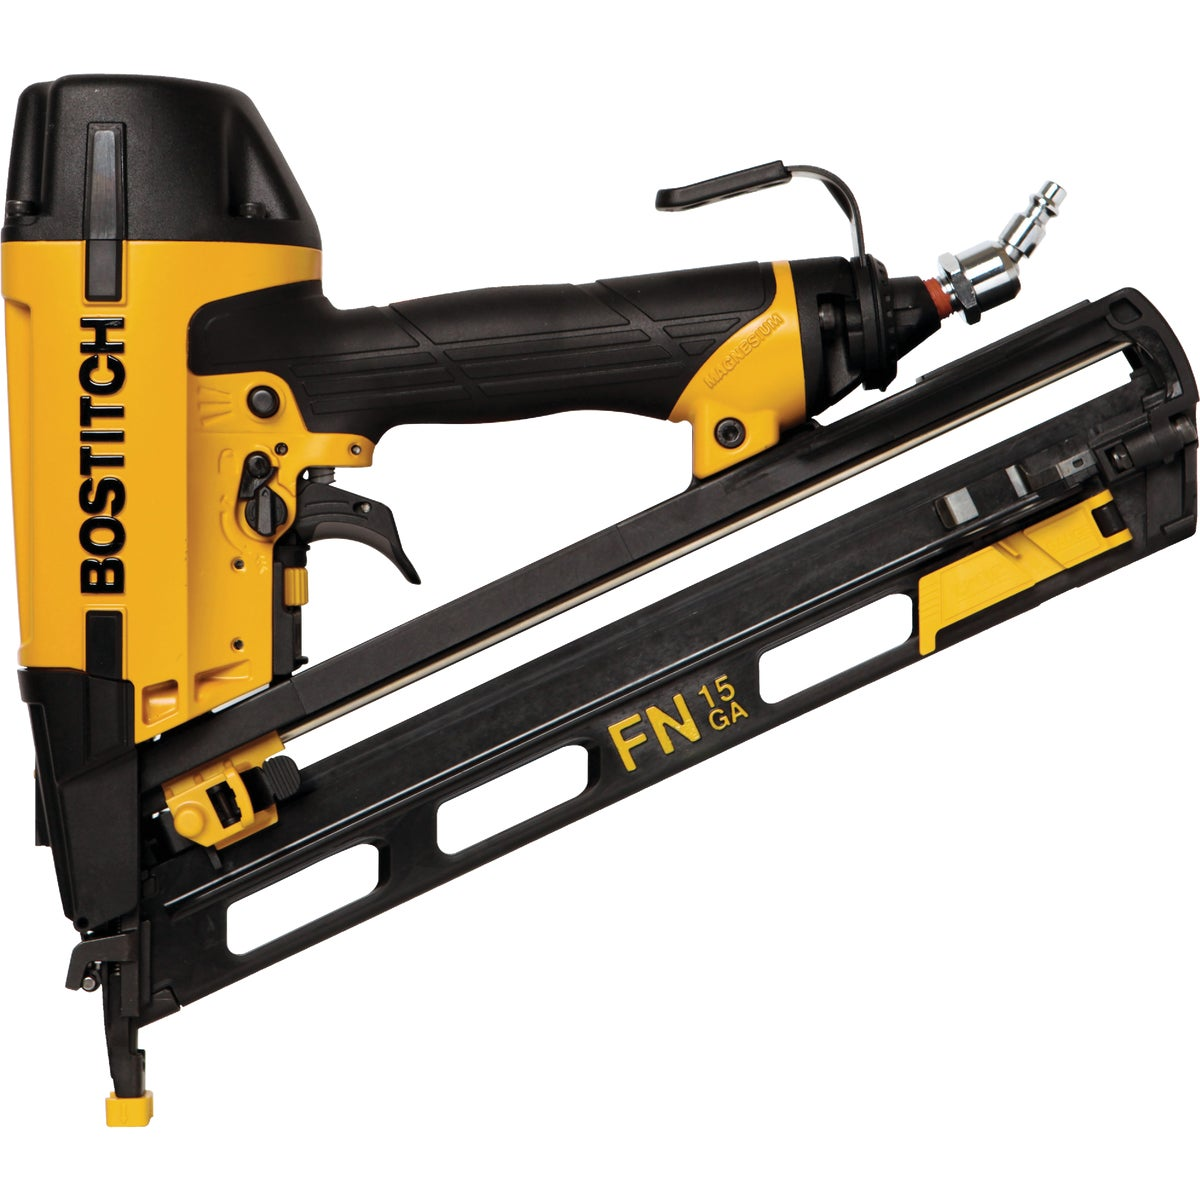 15GA ANGLD FINISH NAILER - N62FNK-2 by Stanley Bostitch